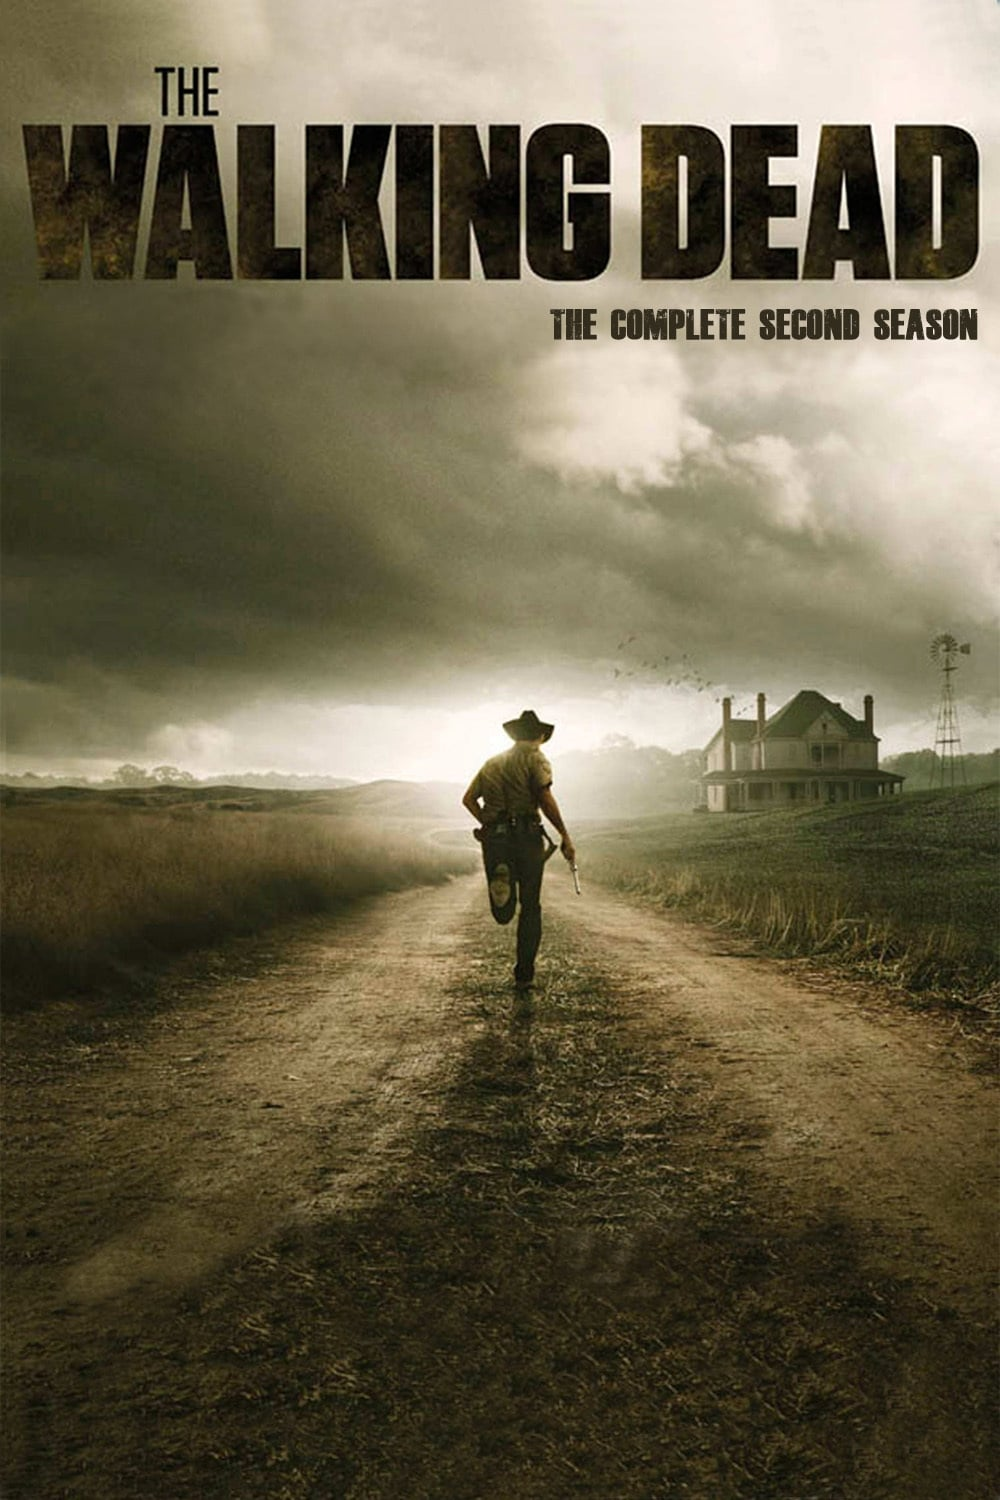 Assistir The Walking Dead - 2x07 - Legendado - Quase Morto Online Legendado 1080p